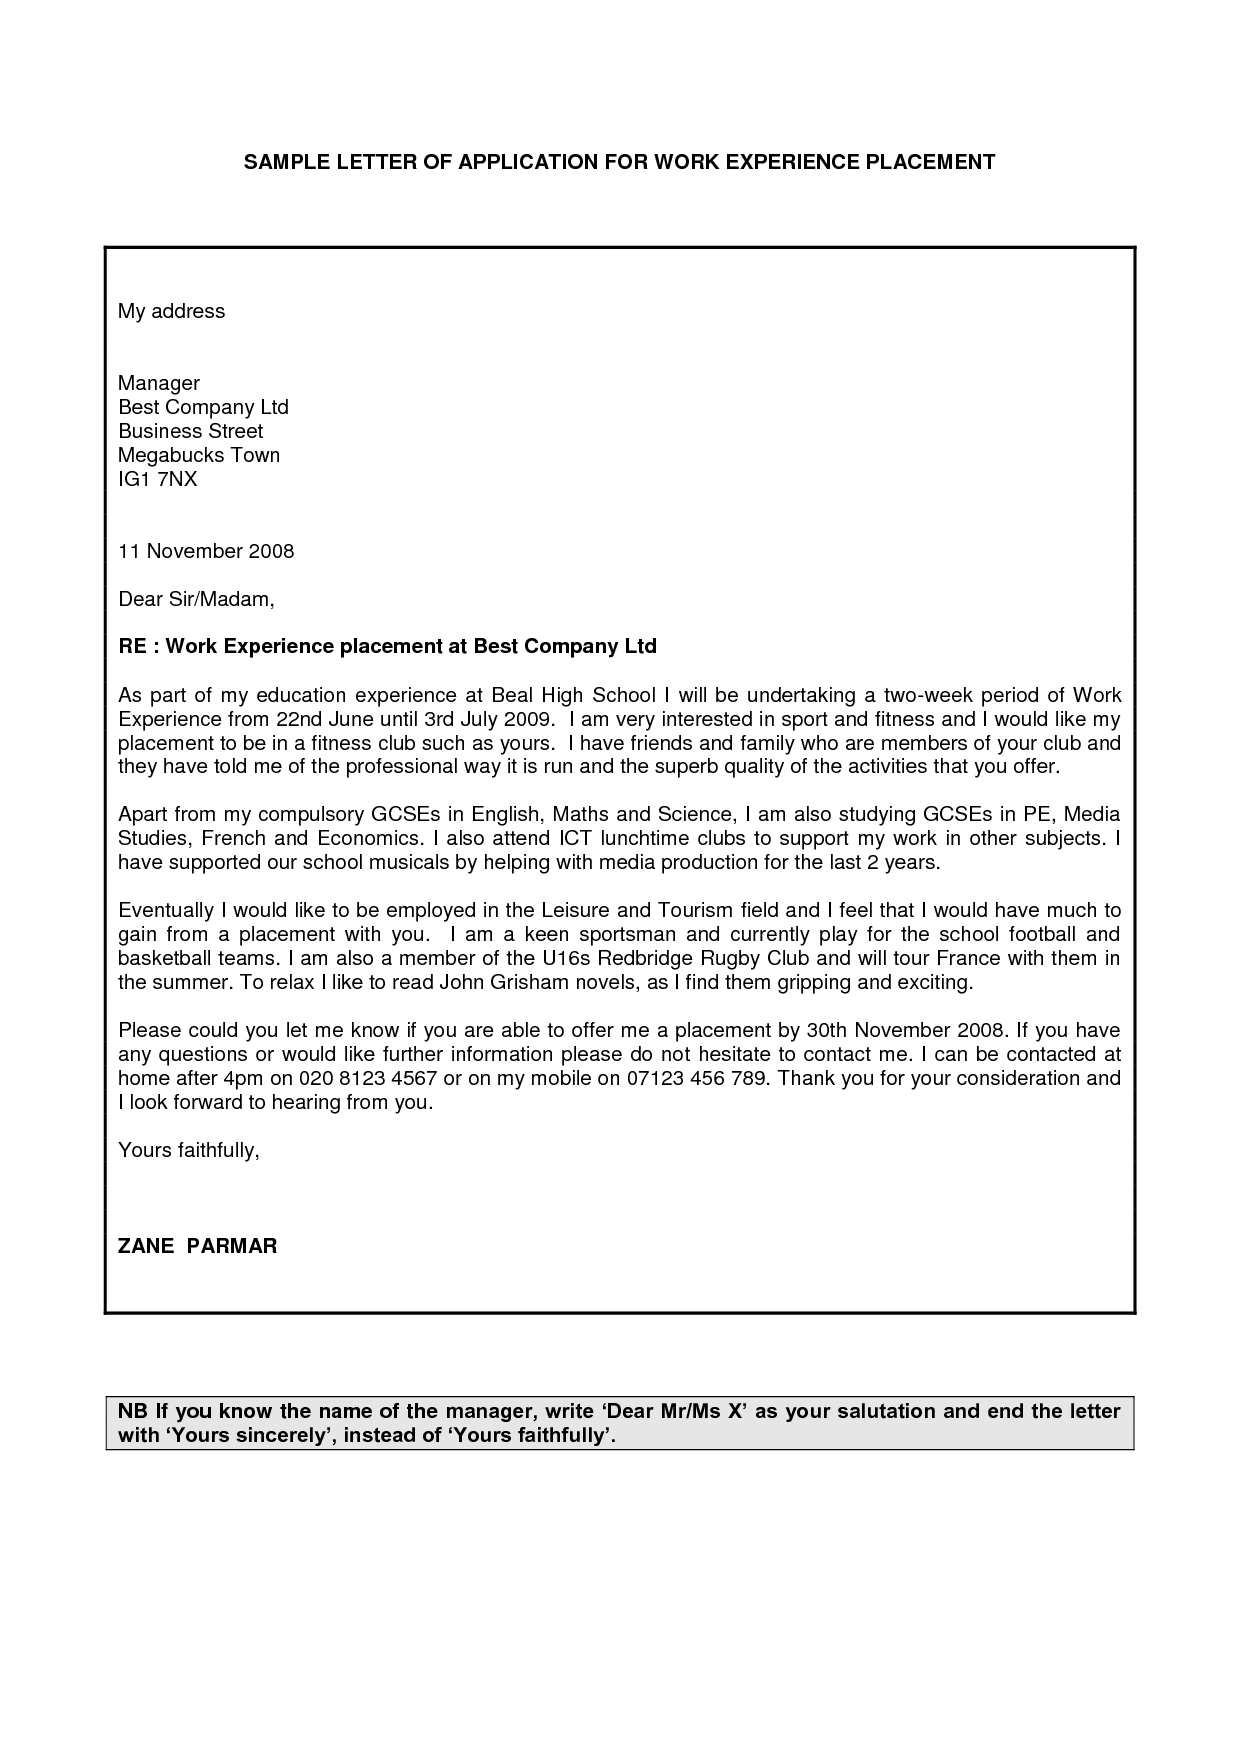 cover letter for work experience placement